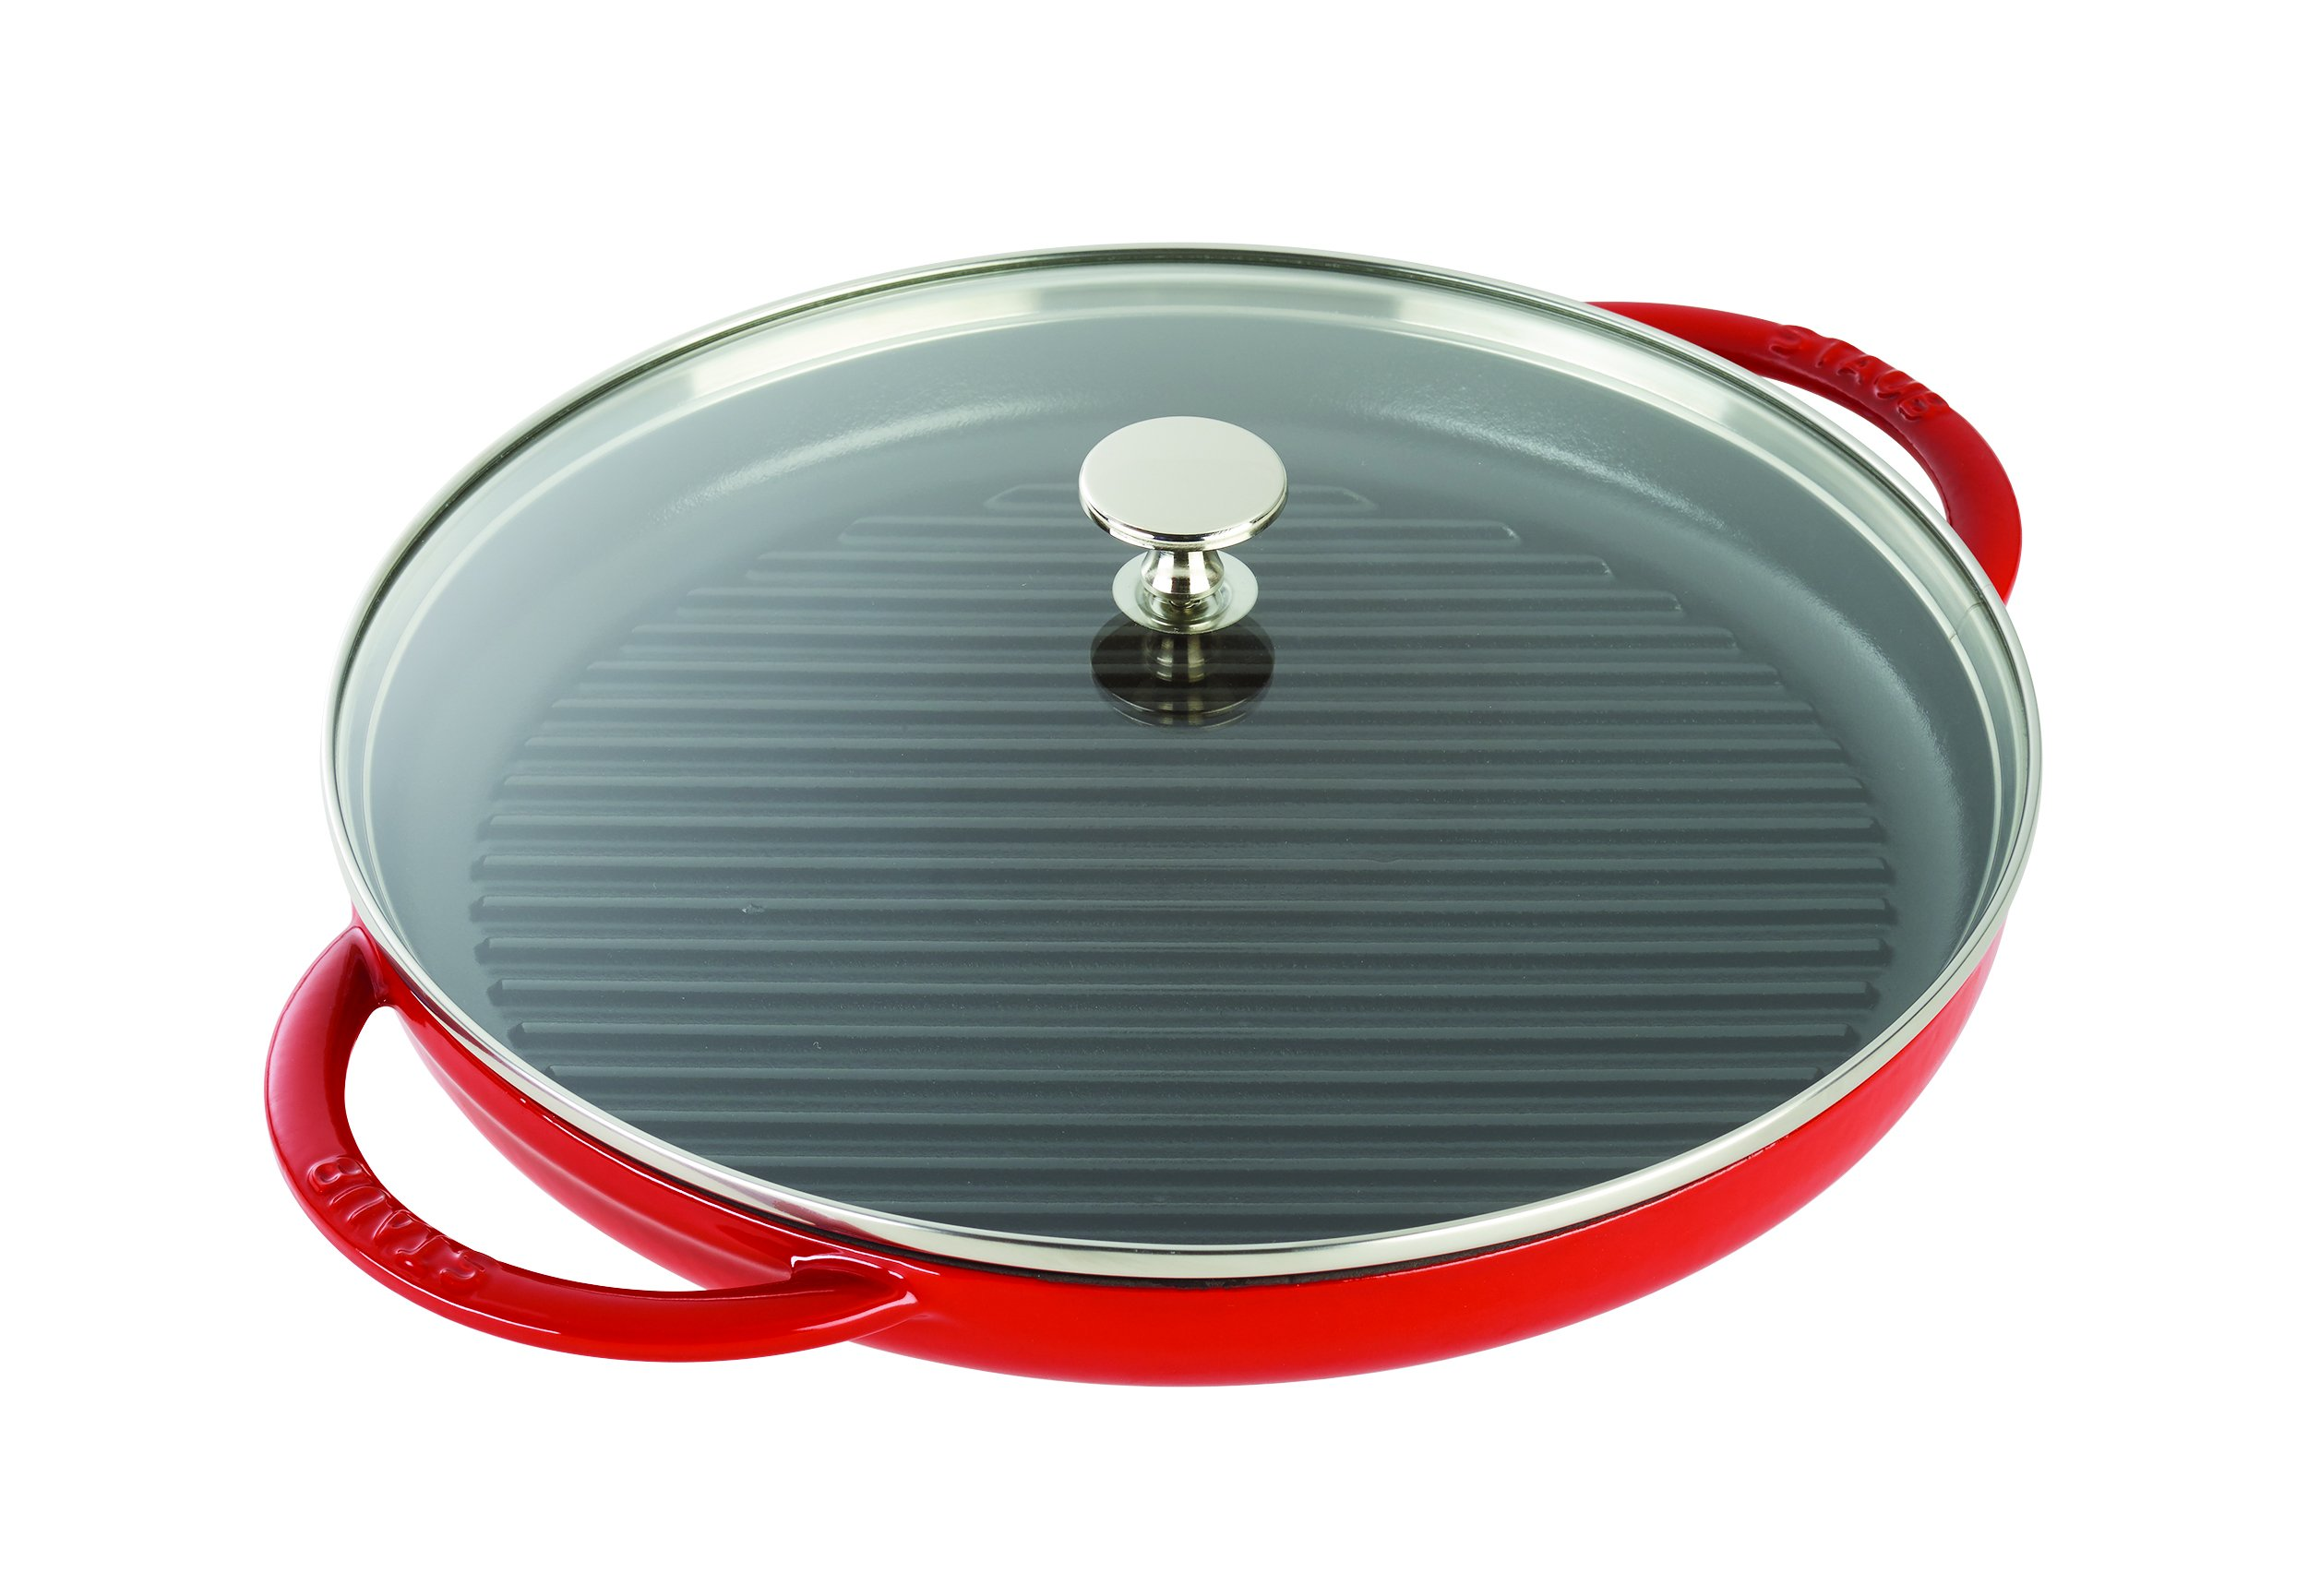 Staub 12042606 Cast Iron Round Steam Grill, 10-inch, Cherry by STAUB (Image #1)